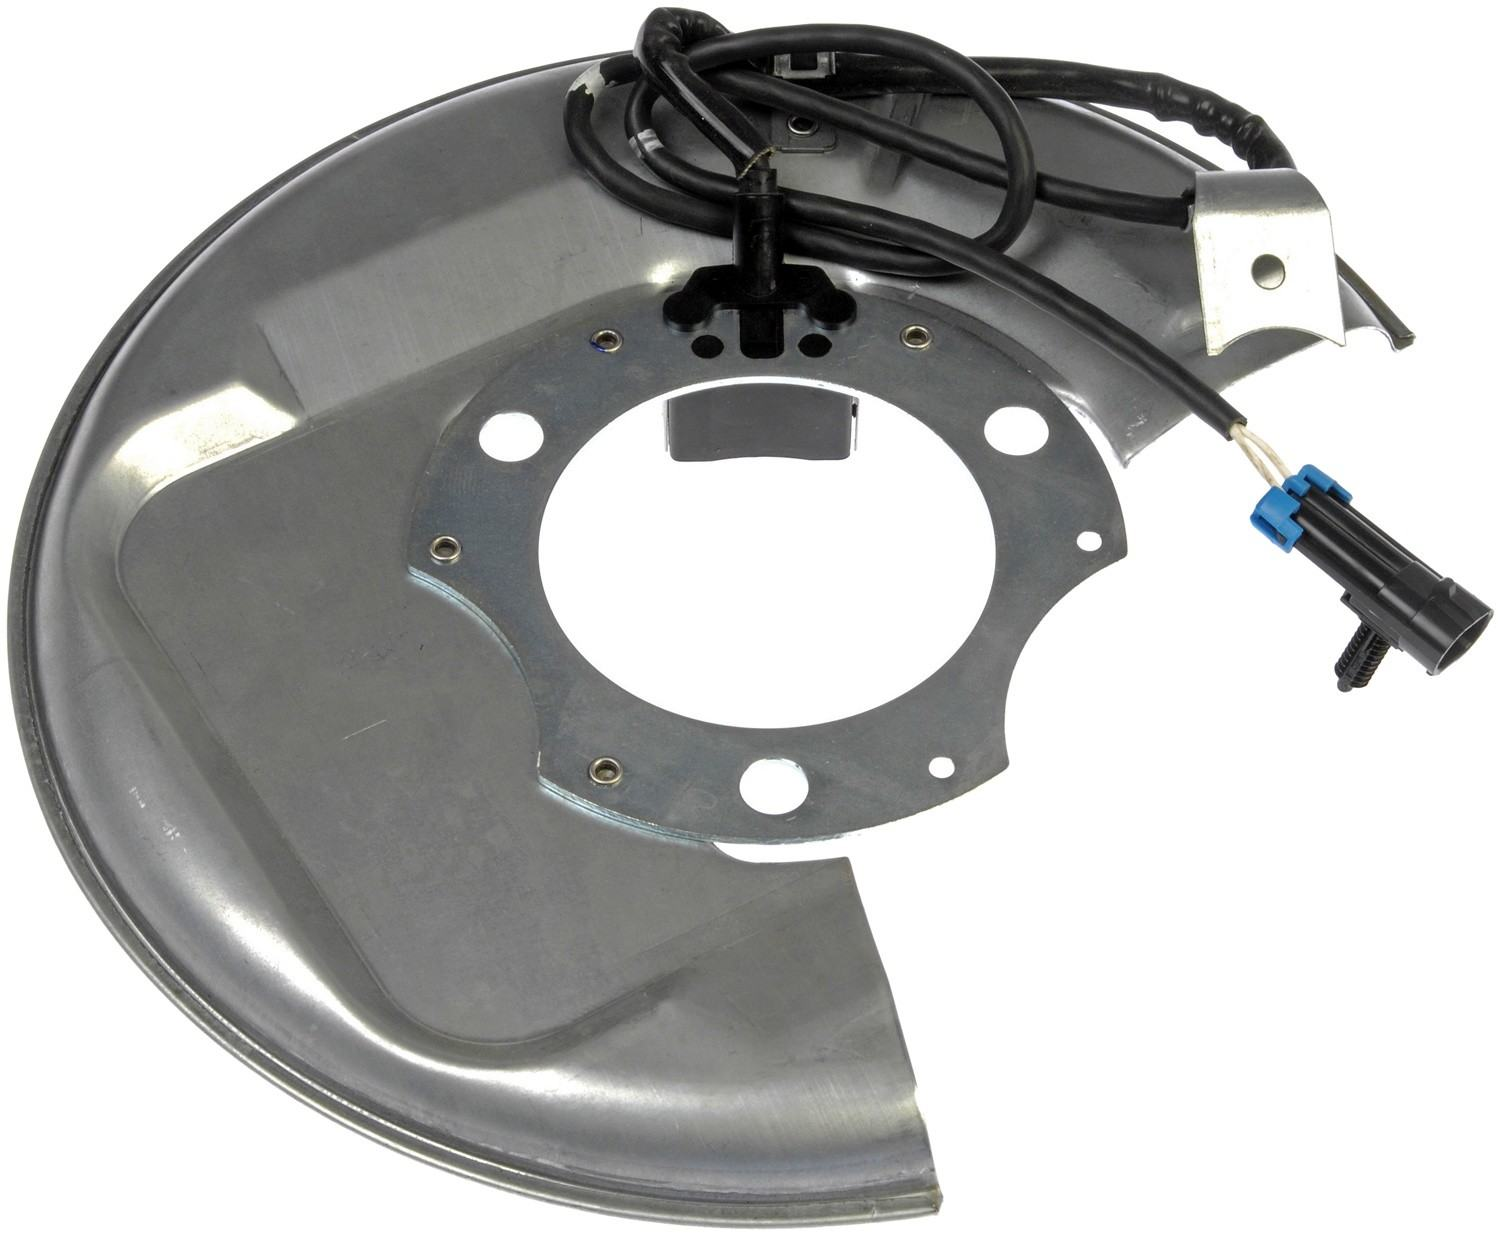 DORMAN OE SOLUTIONS - ABS Wheel Speed Sensor (With ABS Brakes, Front Right) - DRE 970-006